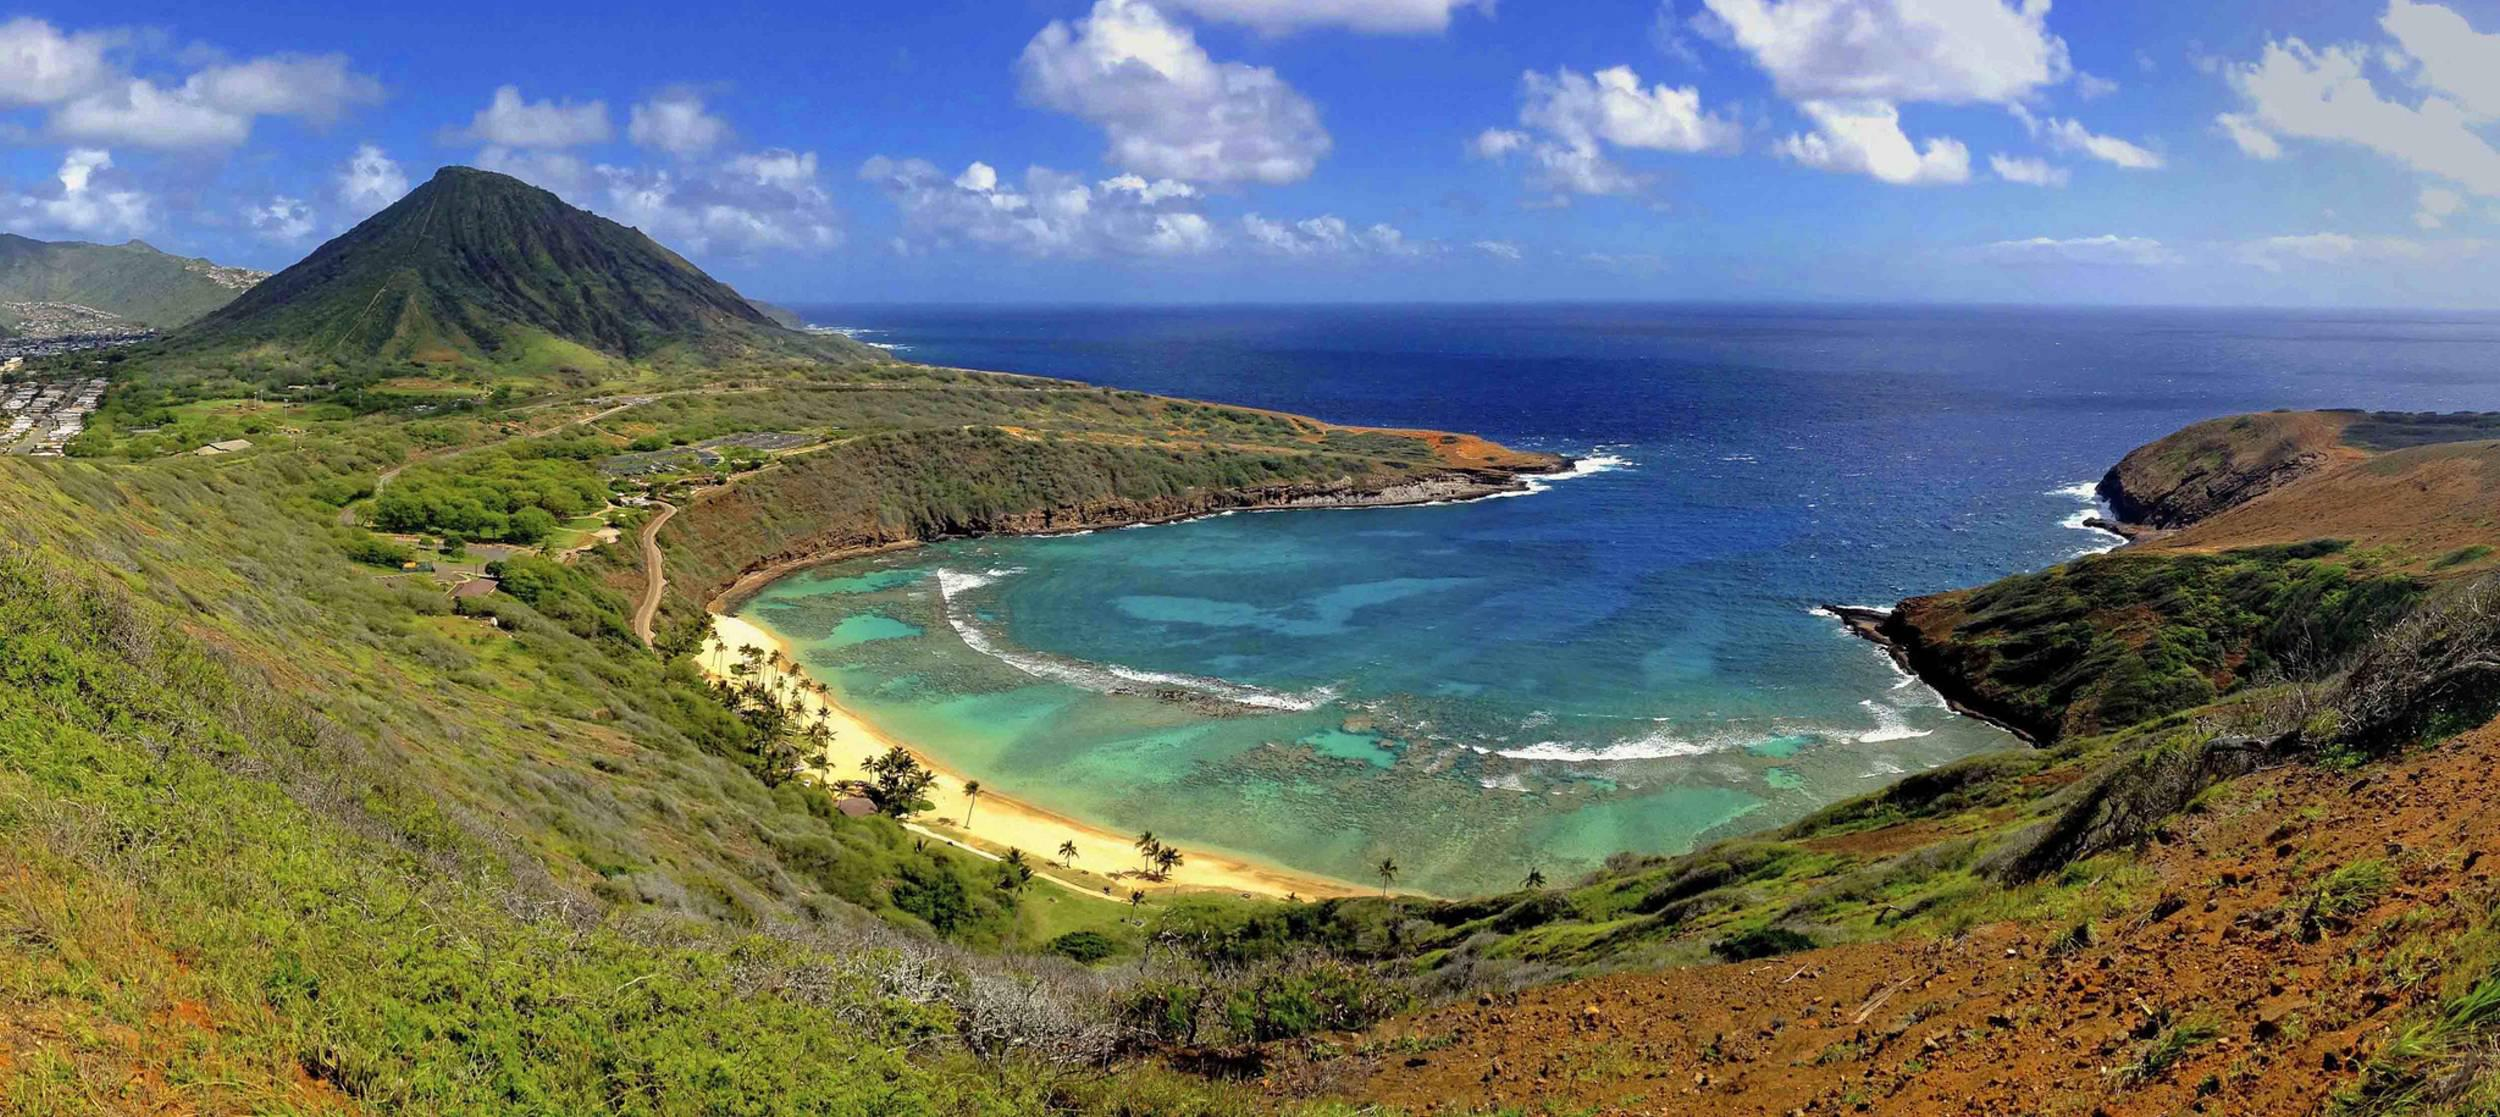 bay oahu hawaii   145239   High Quality and Resolution Wallpapers 2500x1117